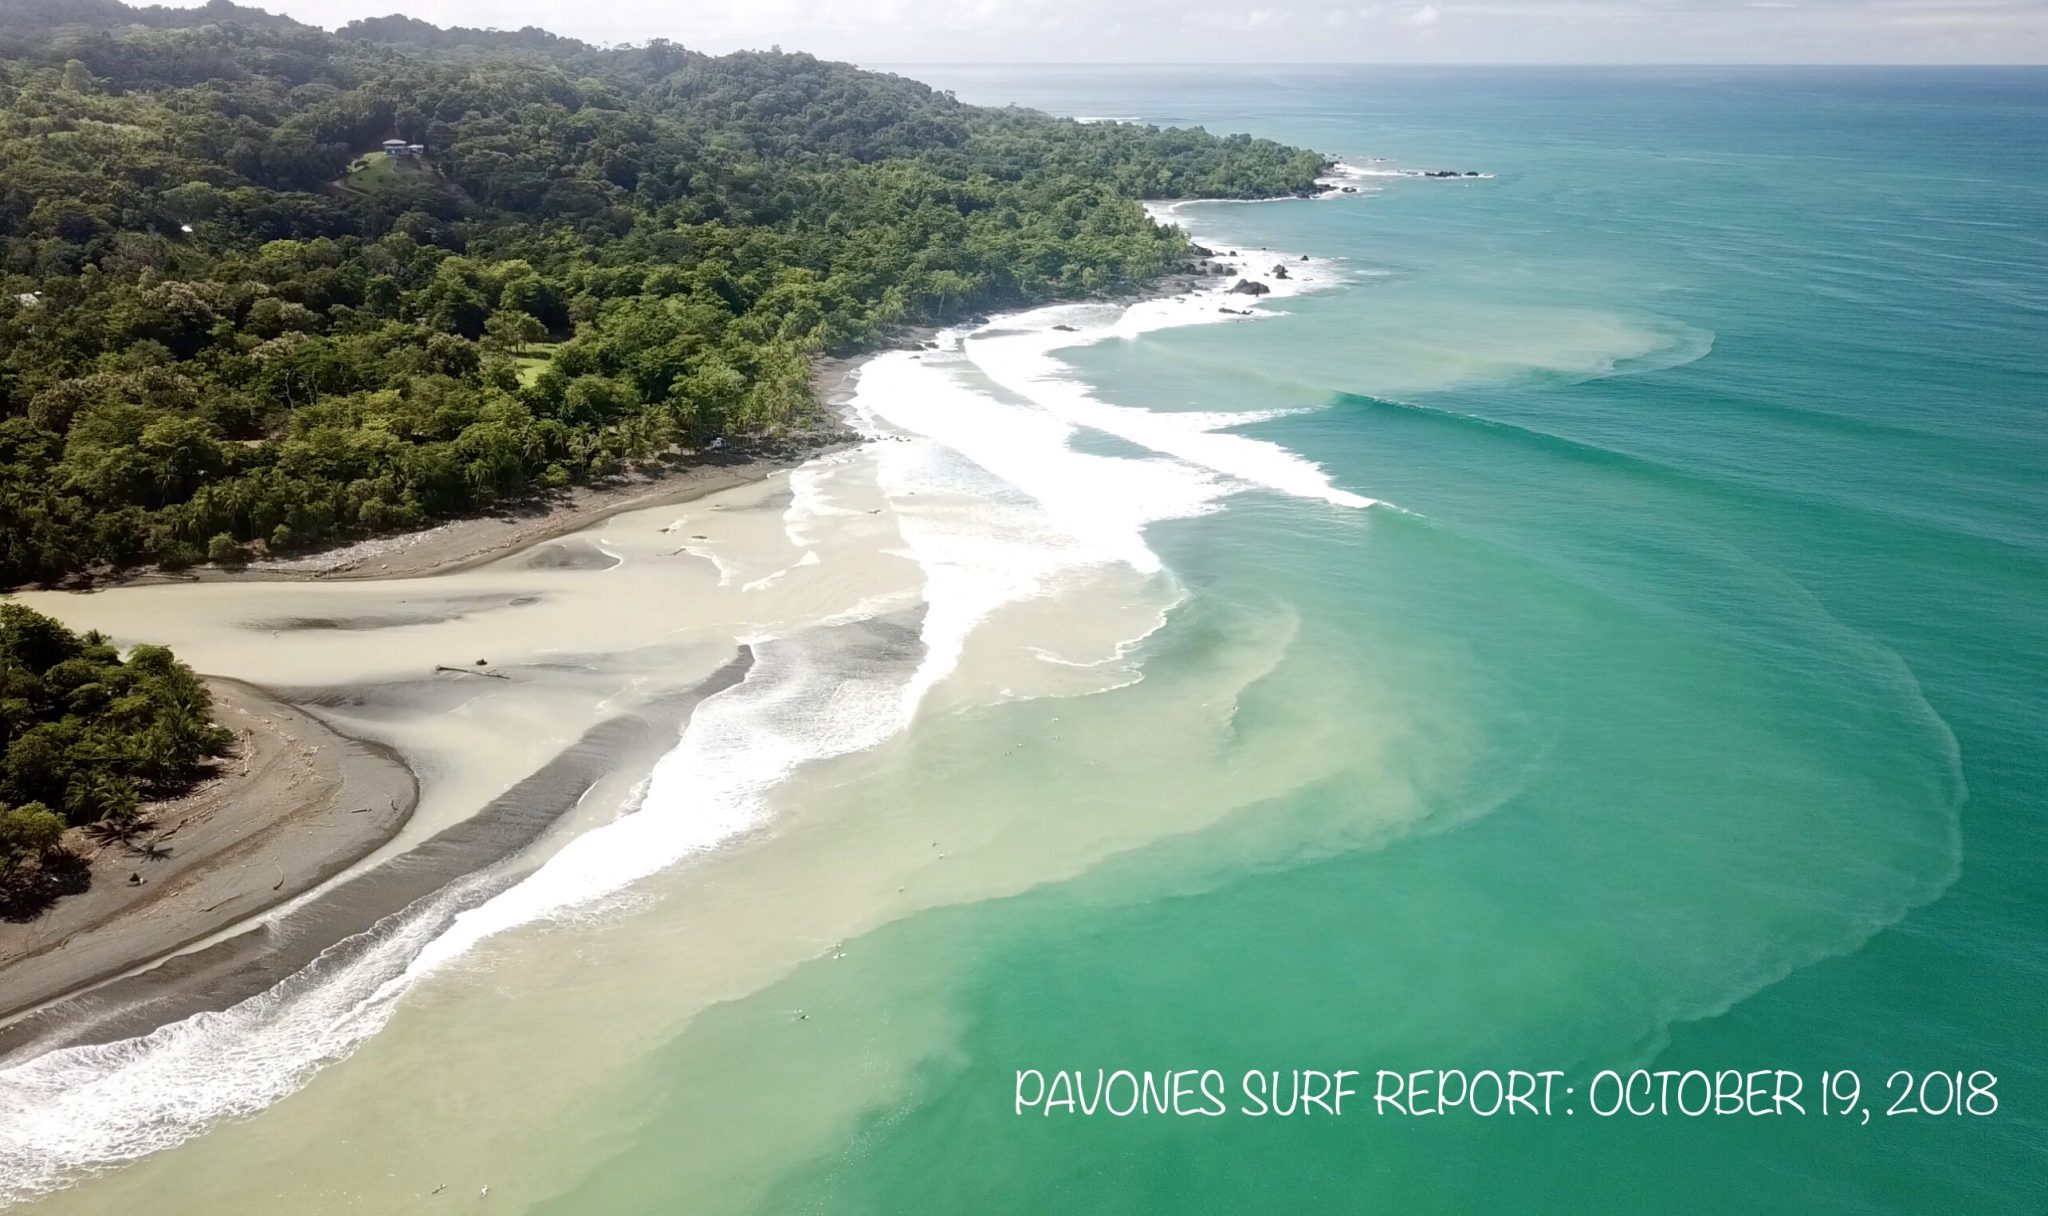 Pavones Costa Rica Surf Report